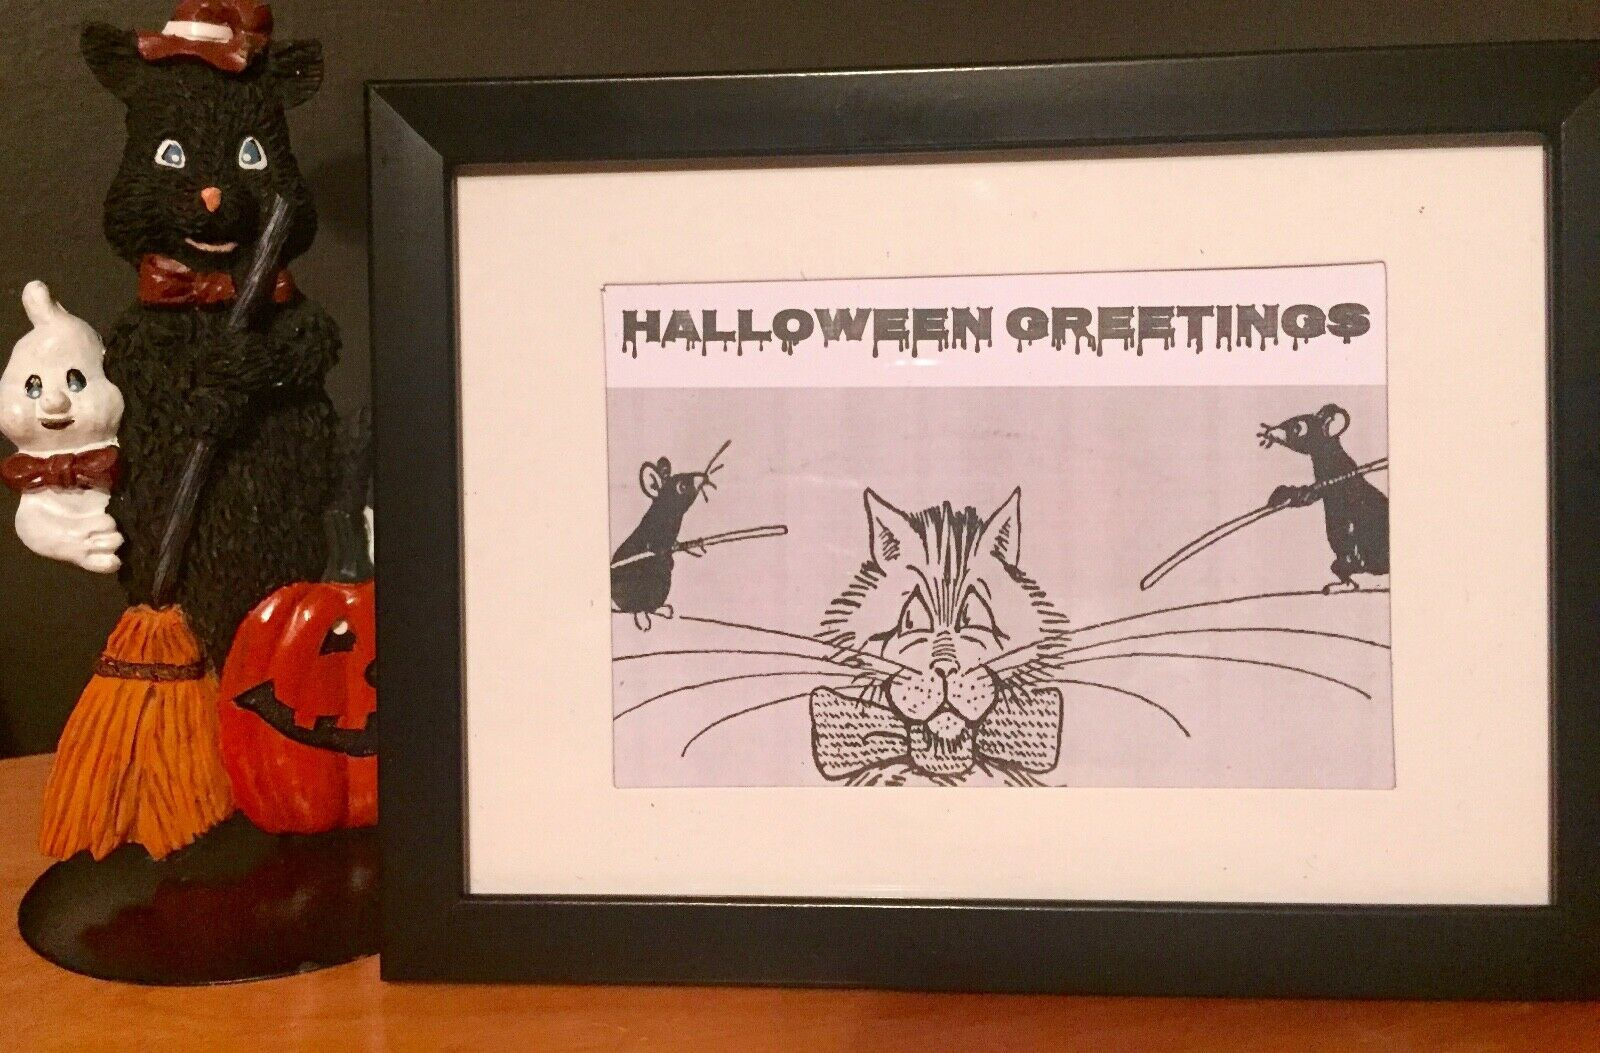 Primary image for HALLOWEEN GREETINGS VINTAGE CARTOON FRAMED Desktop Art Print for Office Space